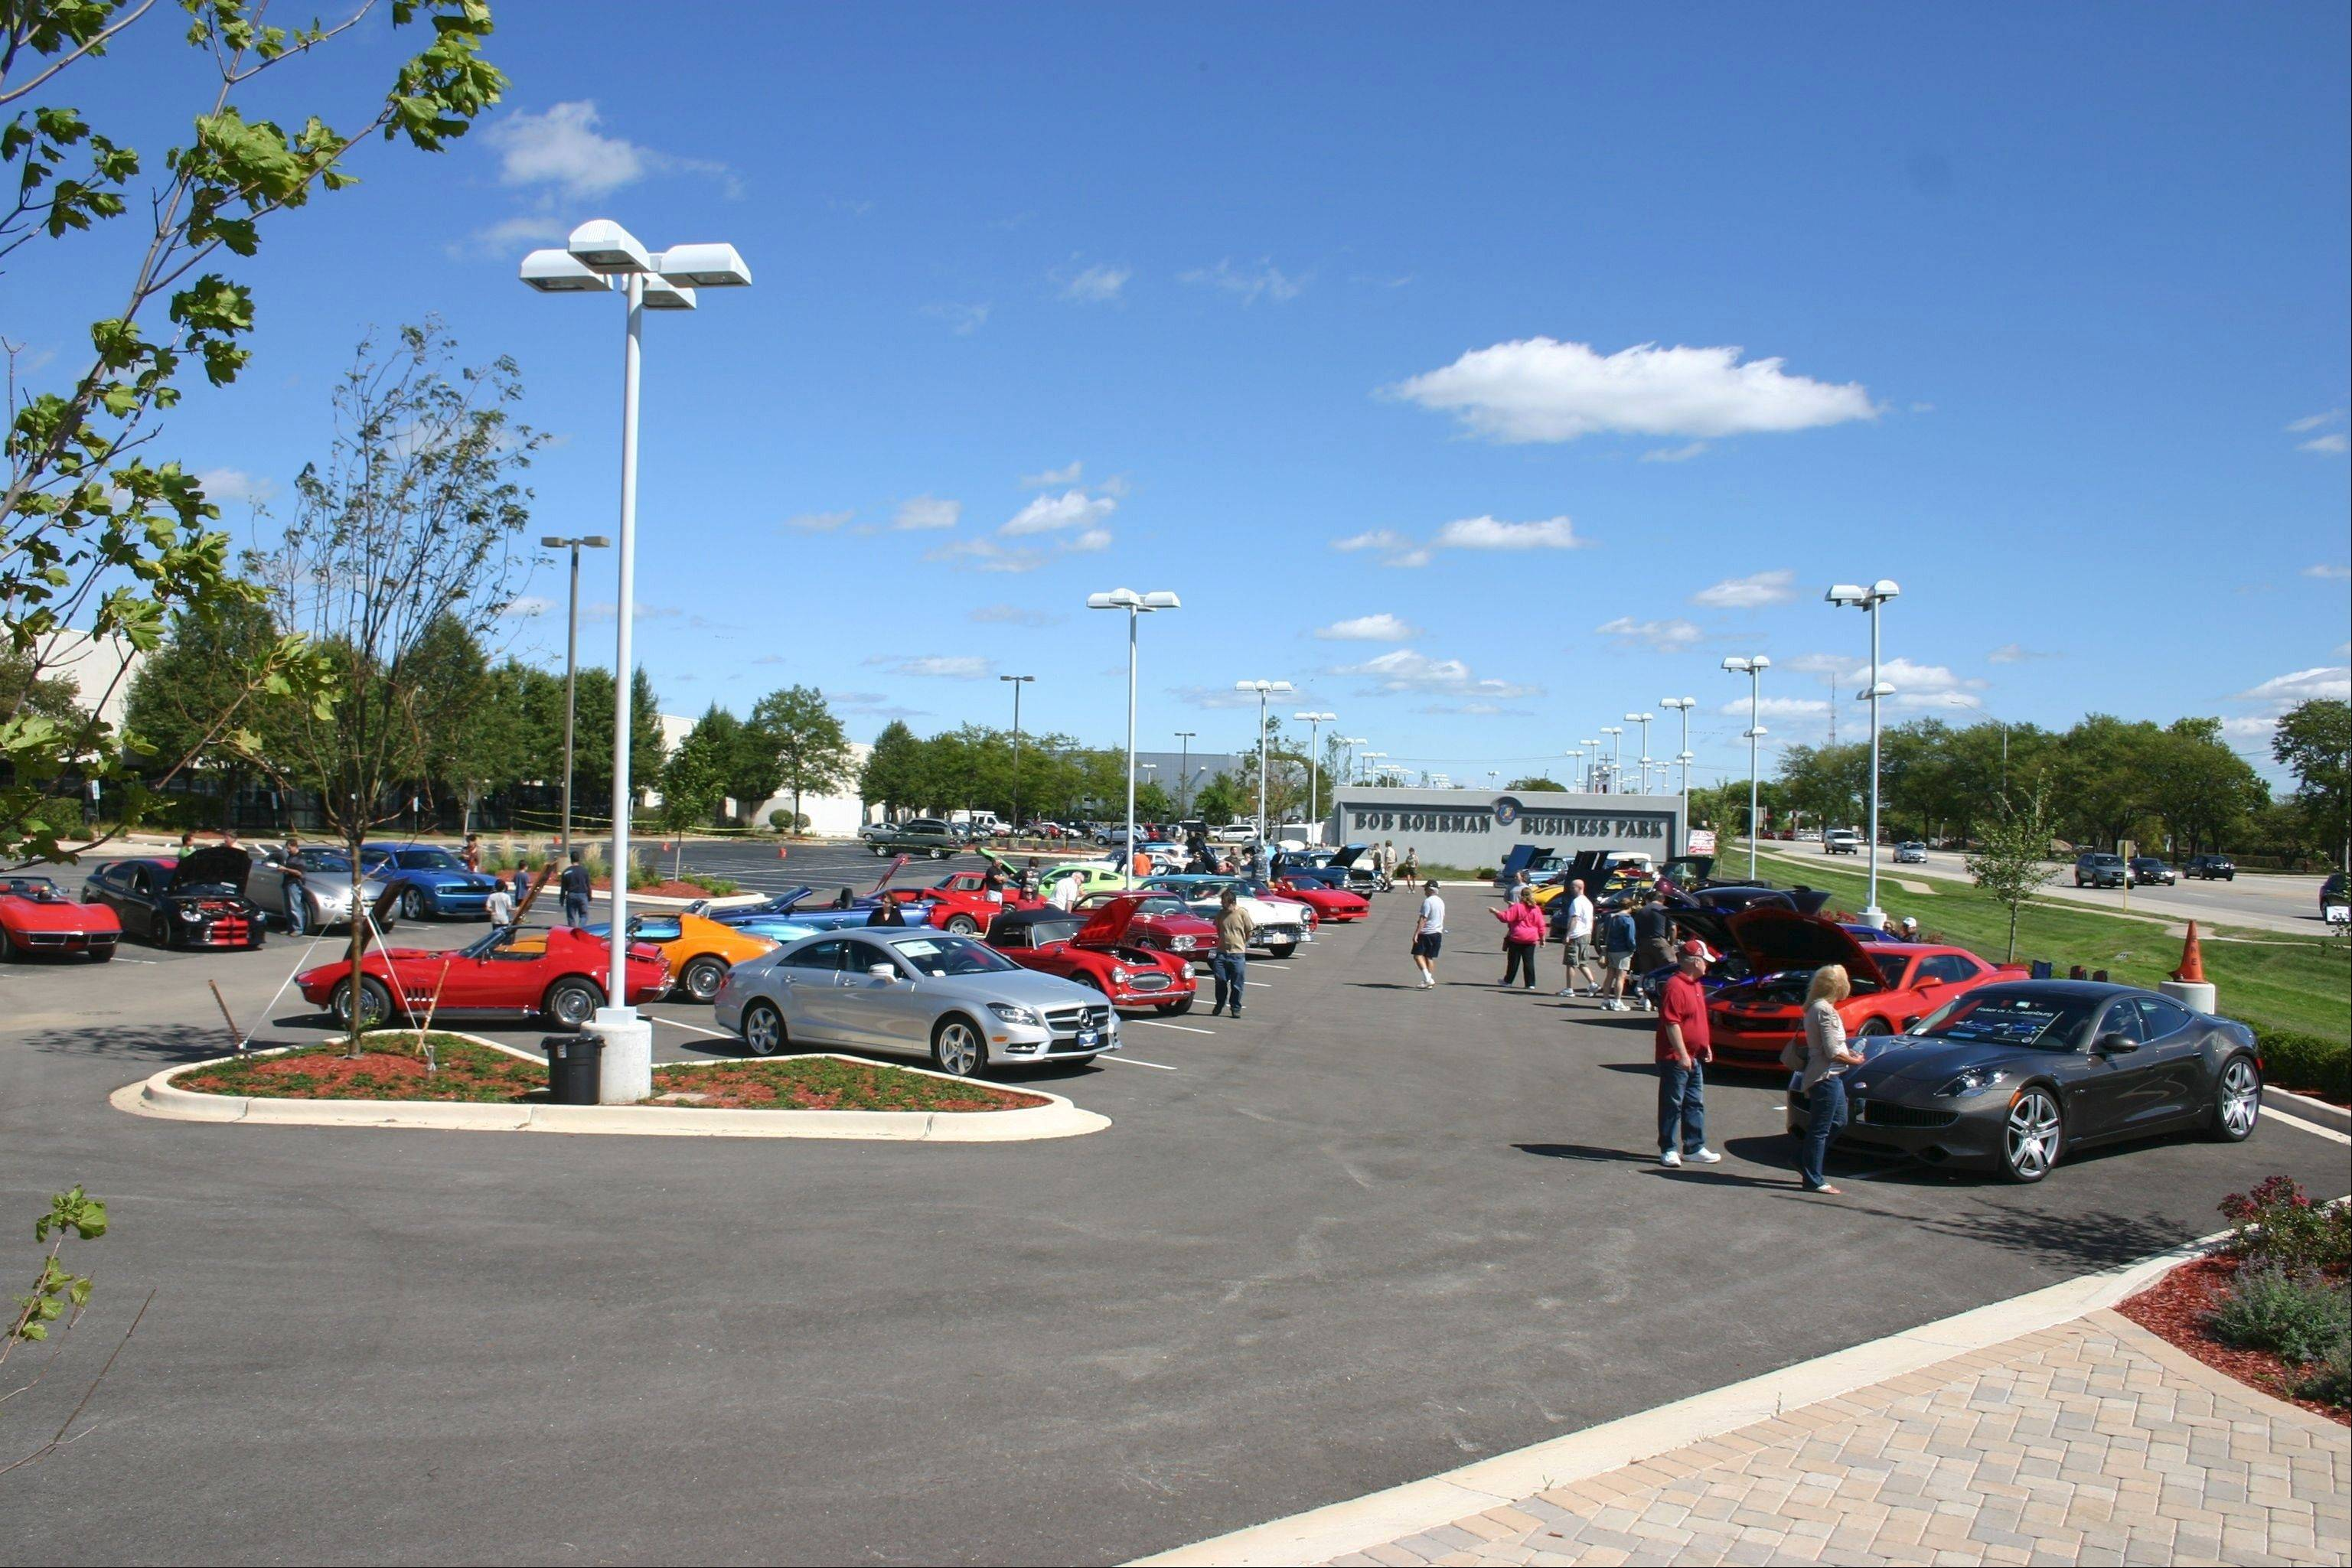 At the Bob Rohrman Business Park, Dundee and Wilke roads, spectators view classic cars during Kevin MacDonald's Eagle Scout Car Show/Food Drive to benefit the food pantry at St. Edna Catholic Church.